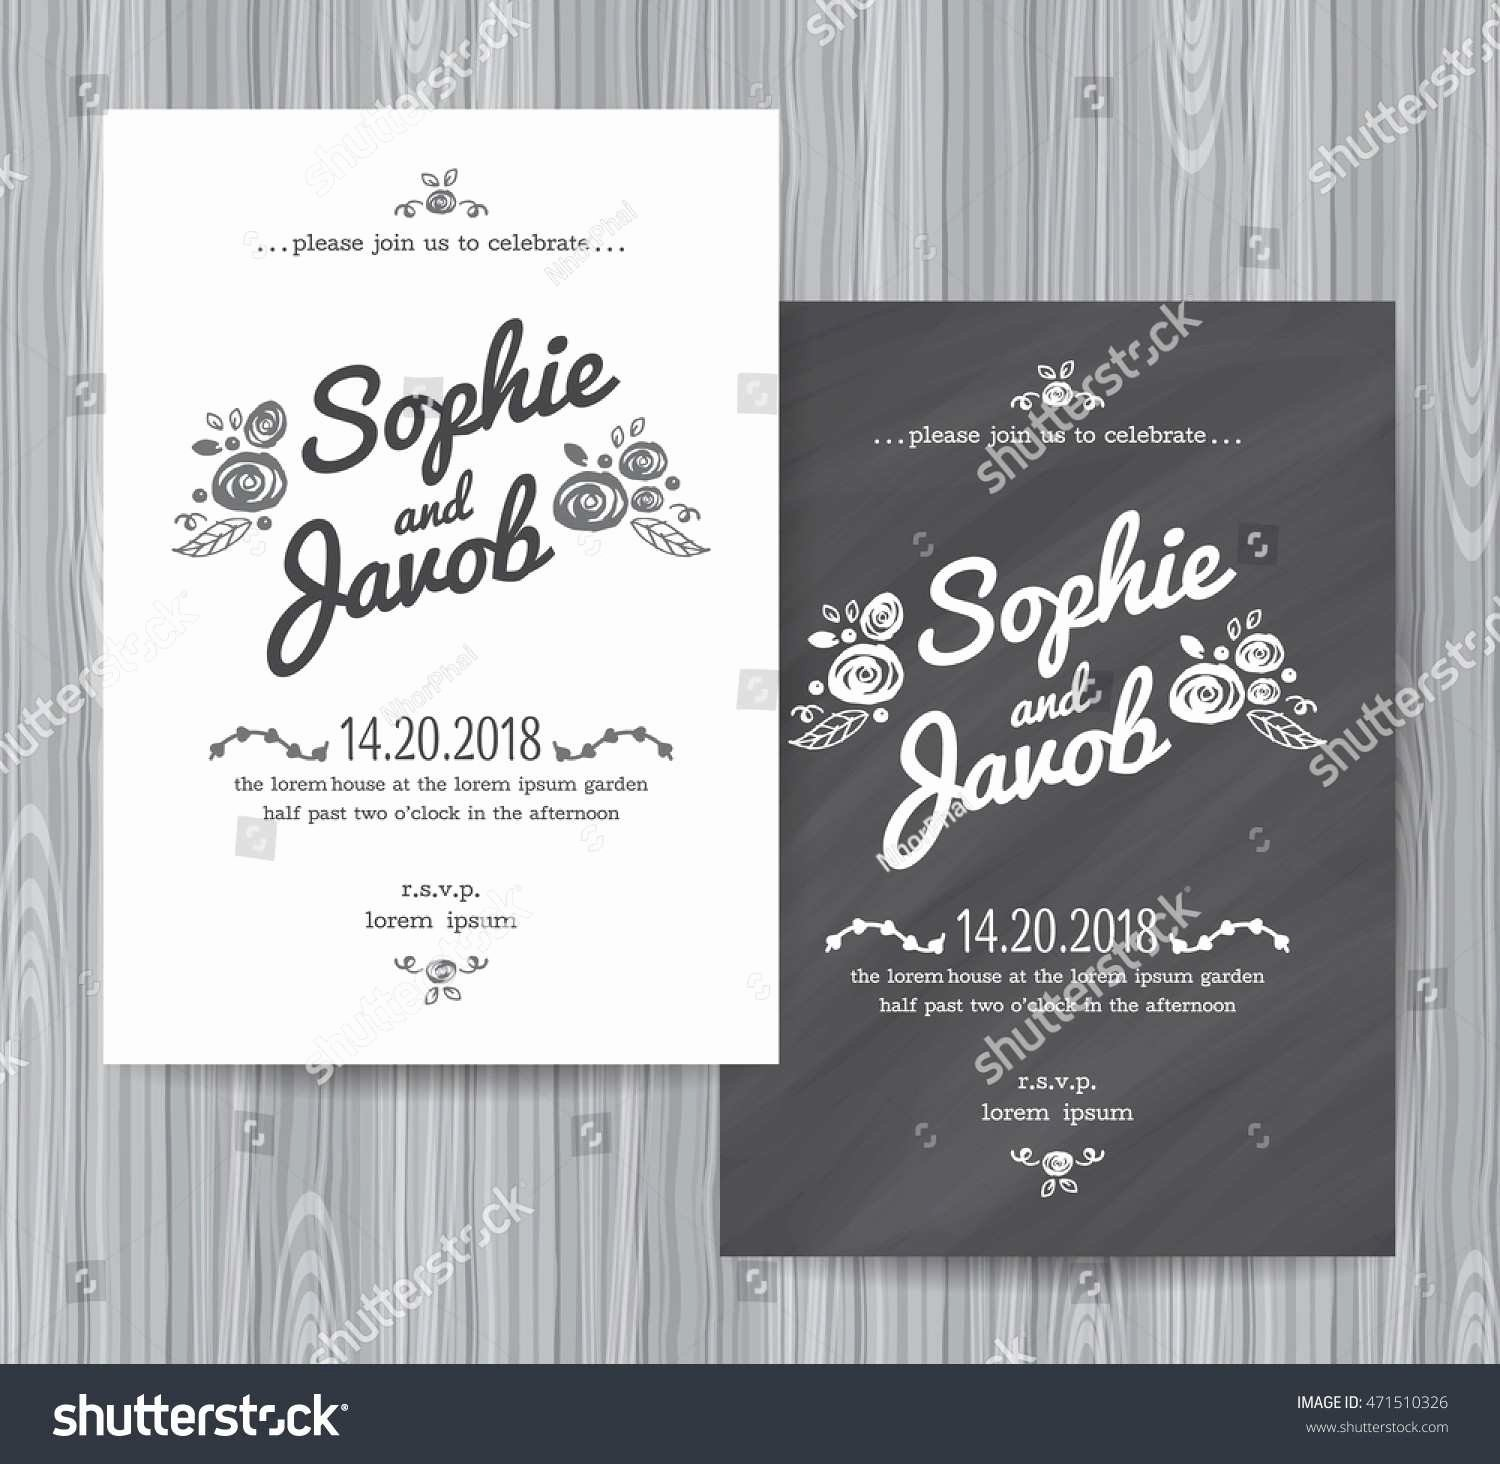 Wedding Registry Card Template Luxury Beautiful Wedding Registry Card Template Free